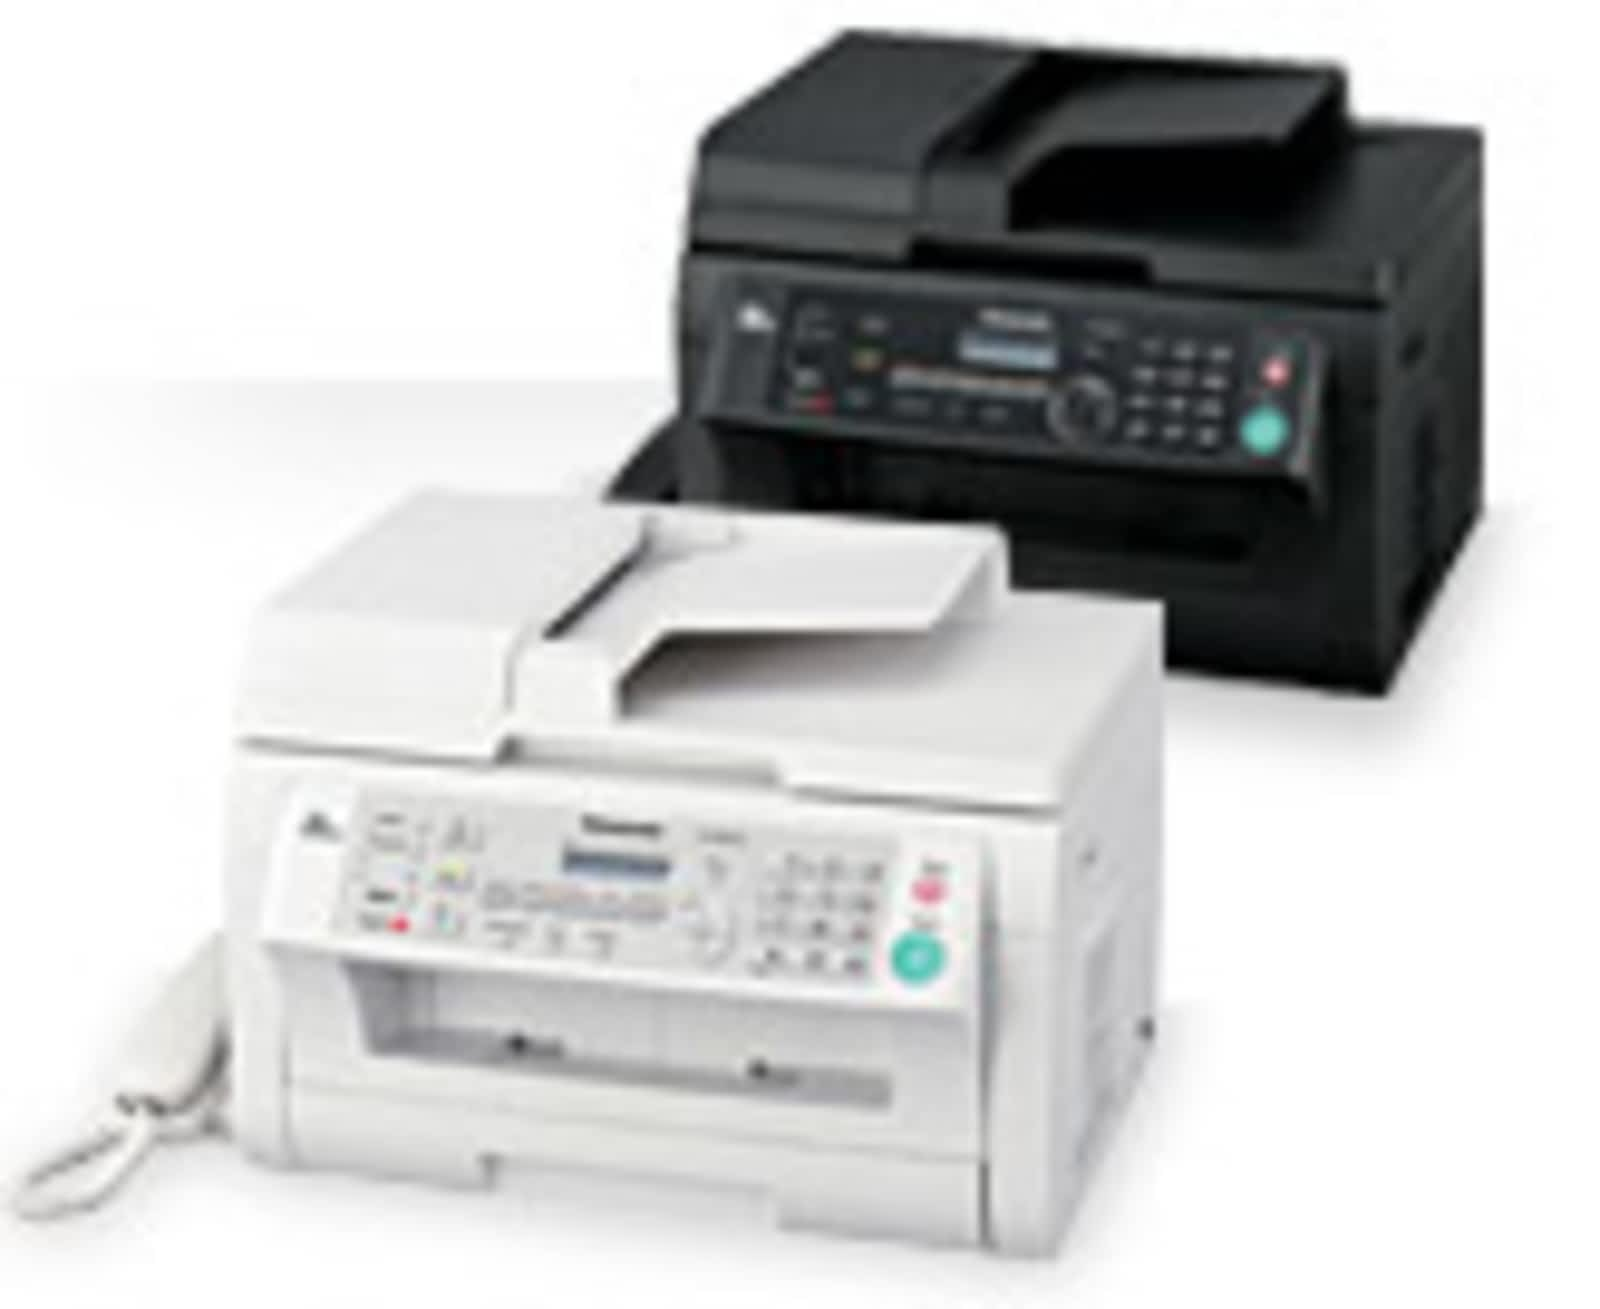 corp cellulars mono x technology fax mfc supplies multifunction plain ppm desktop eofficeproducts copier print paper printers office equipment printer led selkirk scanner color brother product